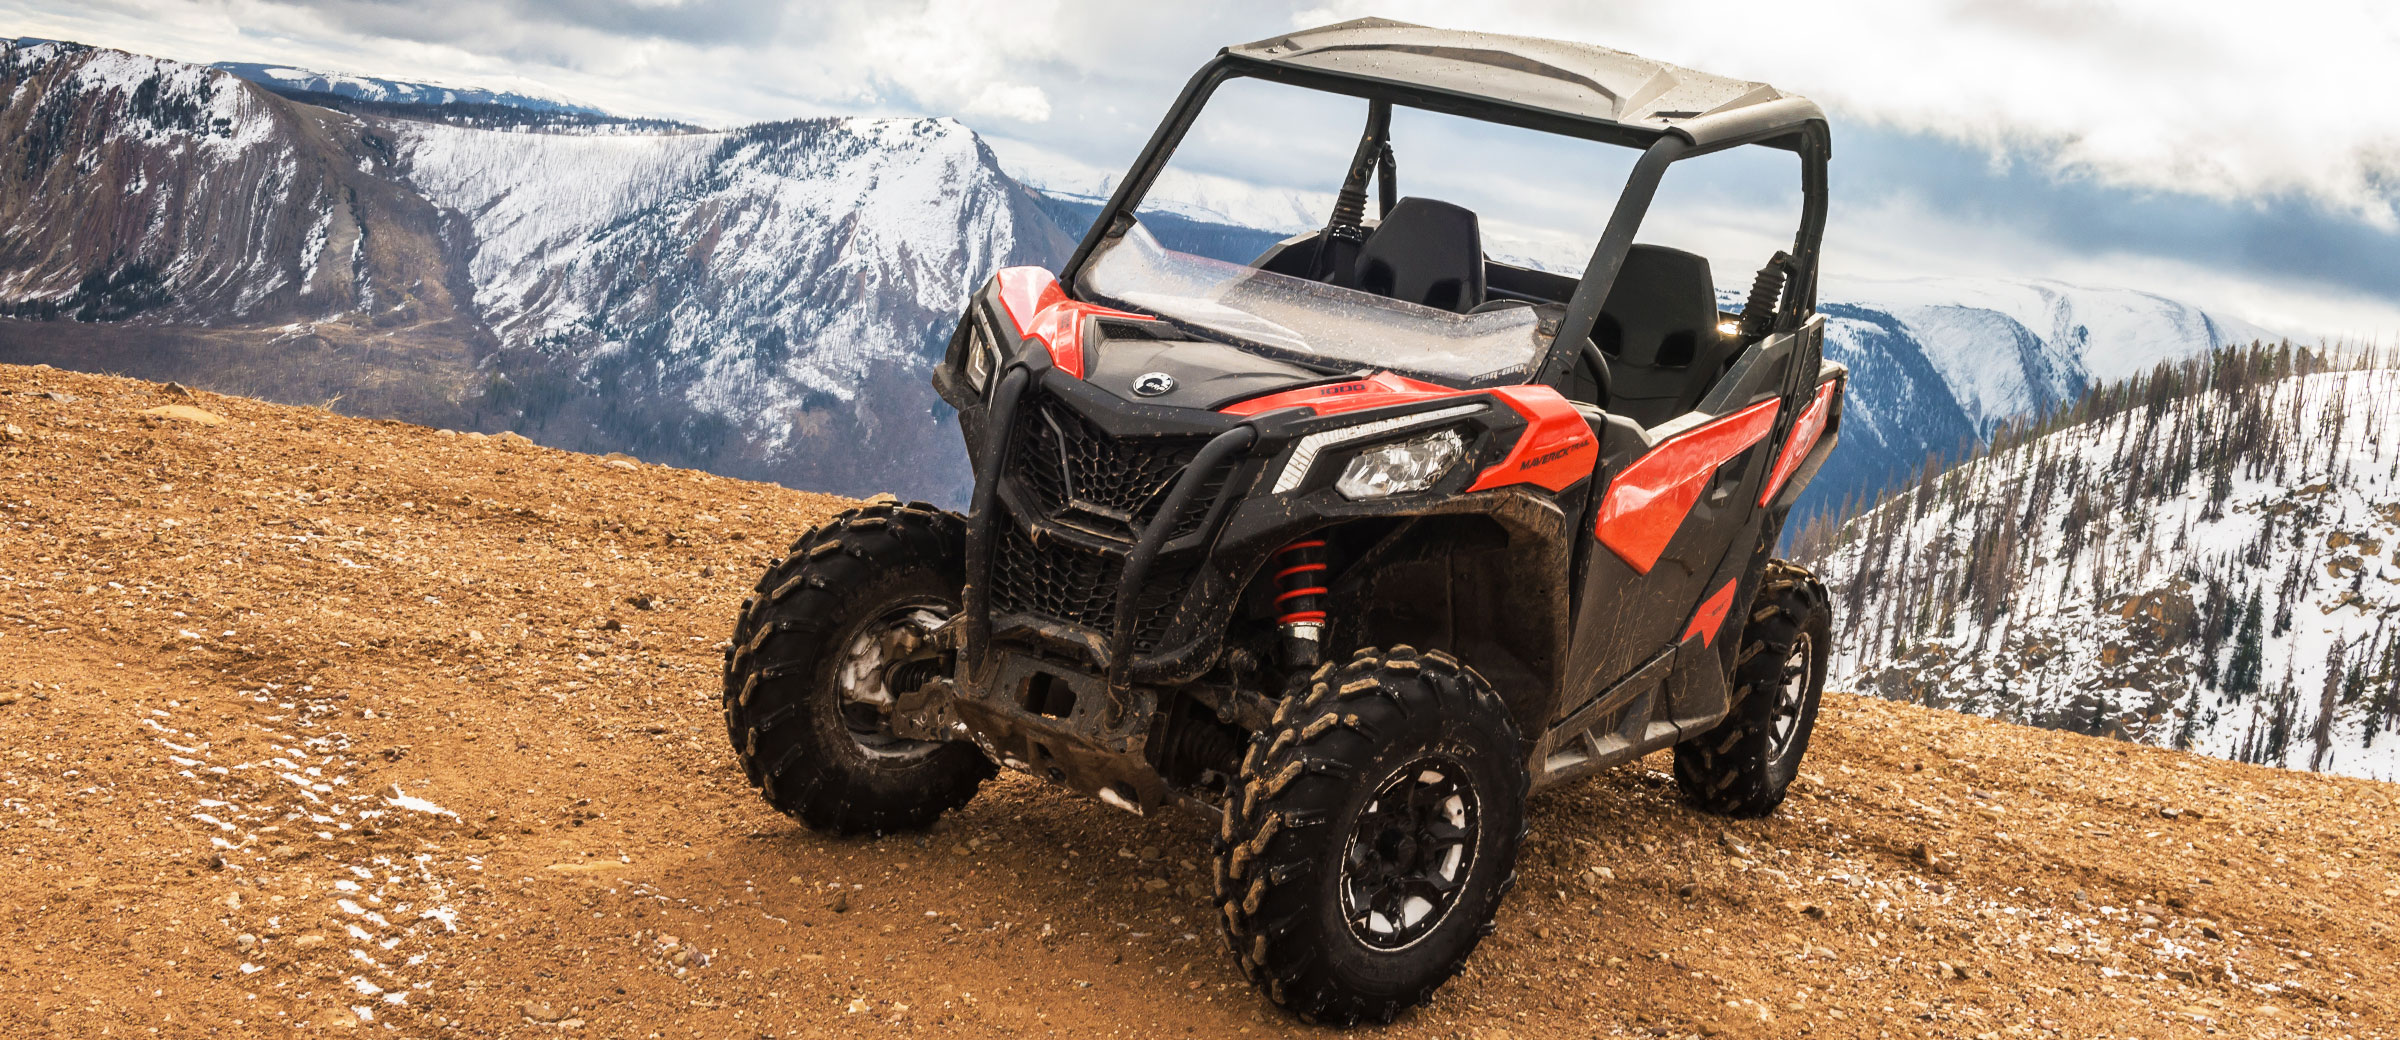 2015 Can Am Maverick >> Can-Am Maverick Trail DPS 1000 - Trail Review   Busted Wallet